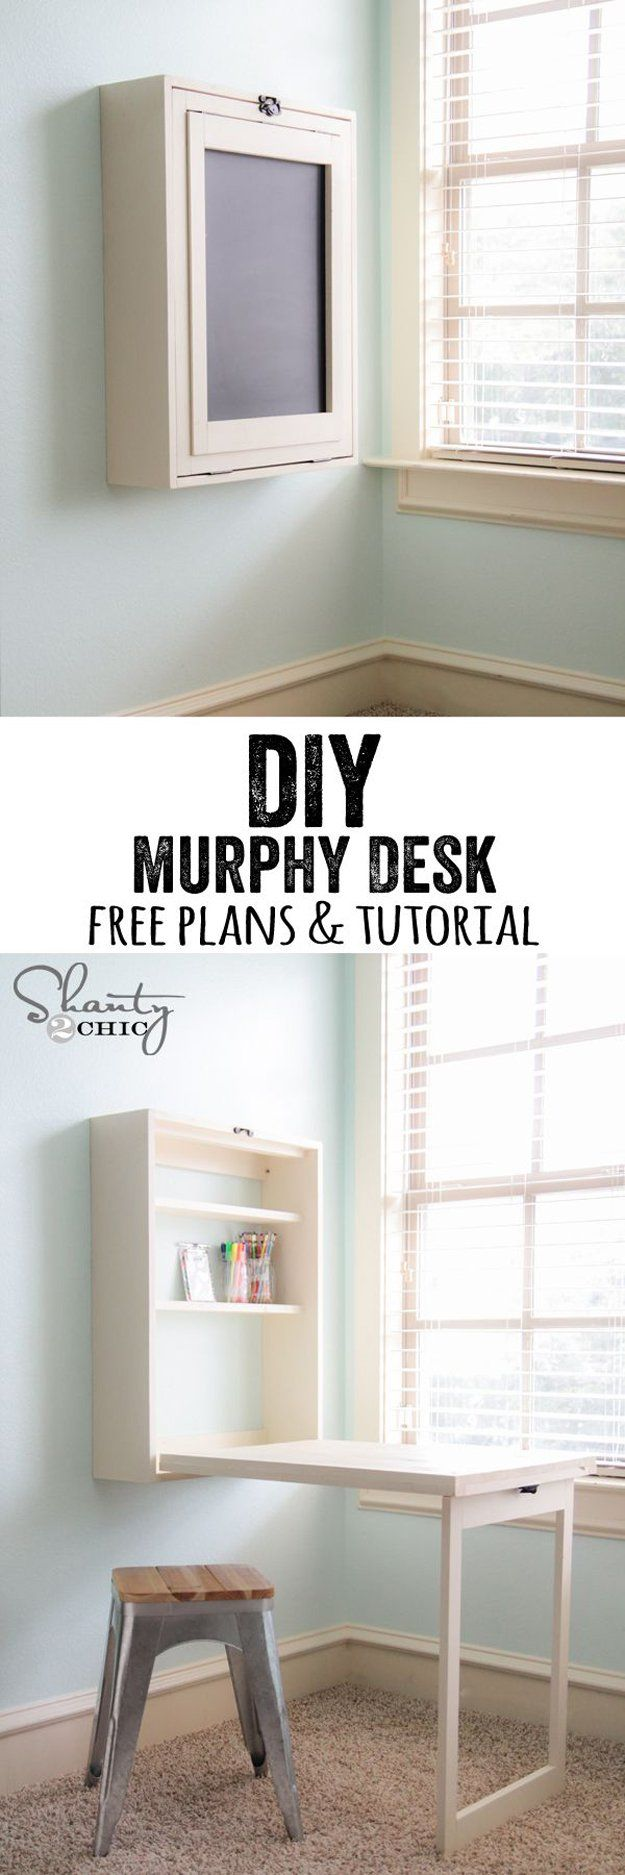 26 Ingenious DIY Ideas For Small Spaces DIY Ready